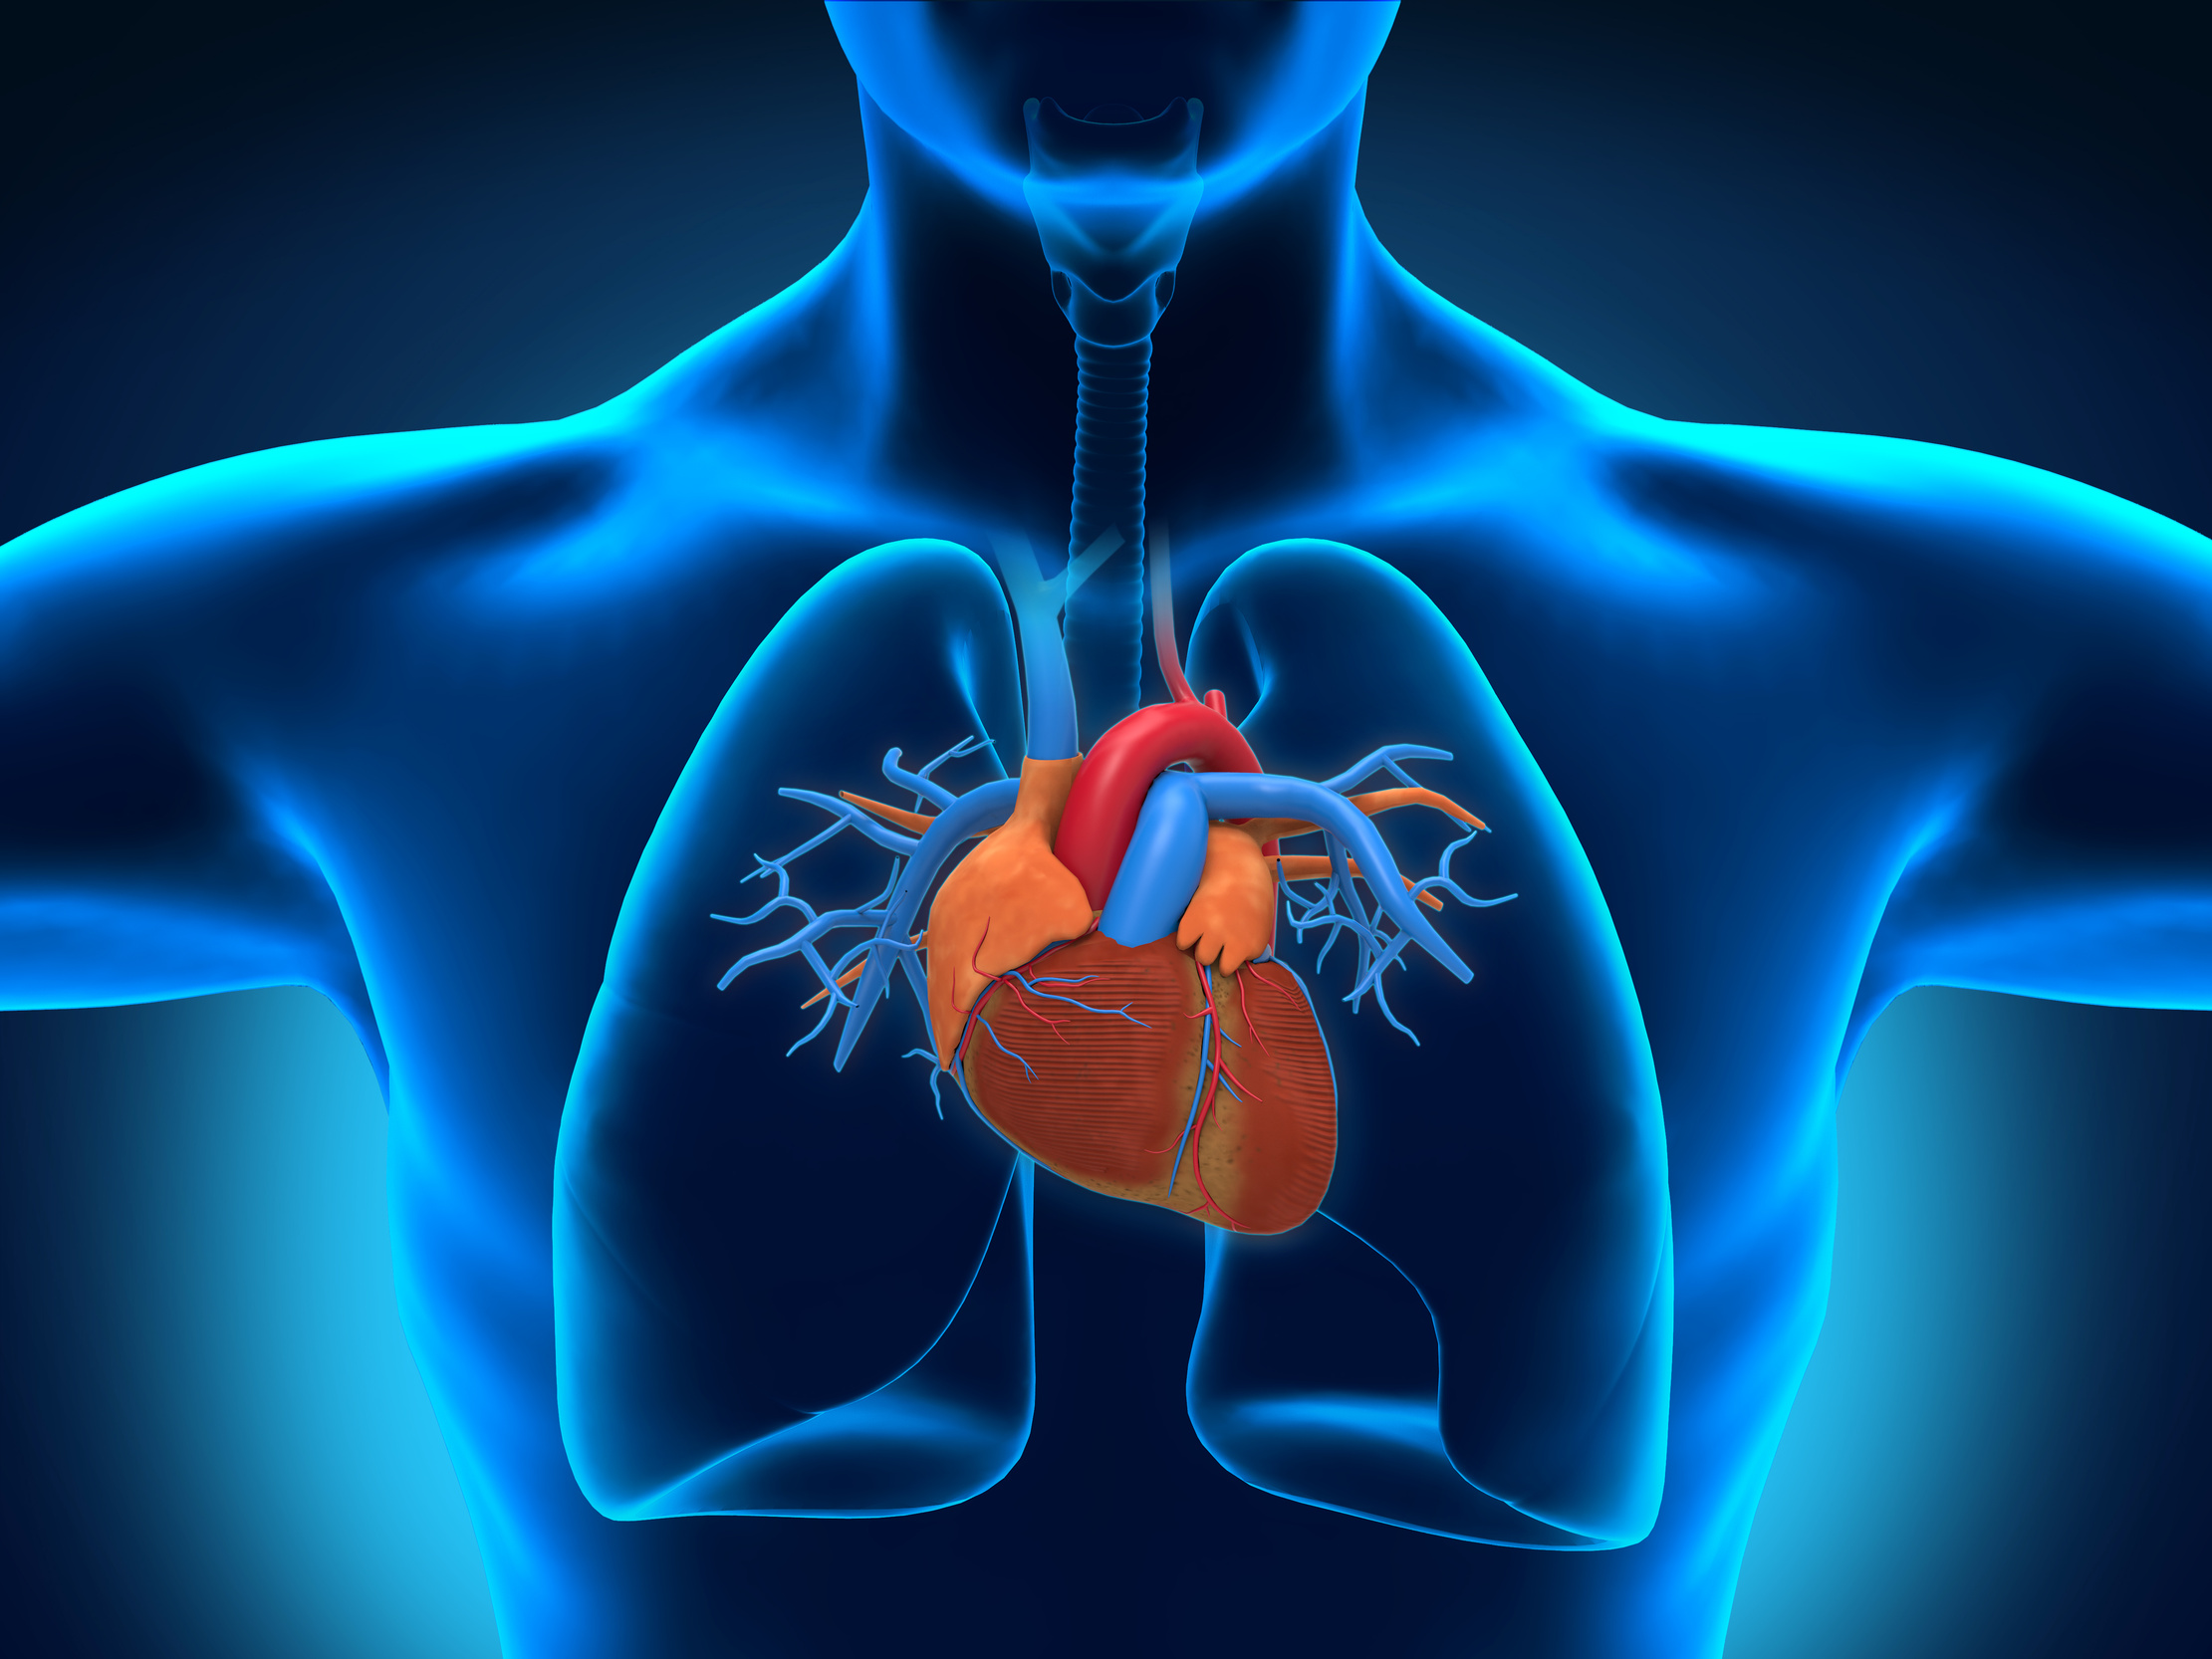 Cardiology Medical Billing and Coding Services in Florida, USA